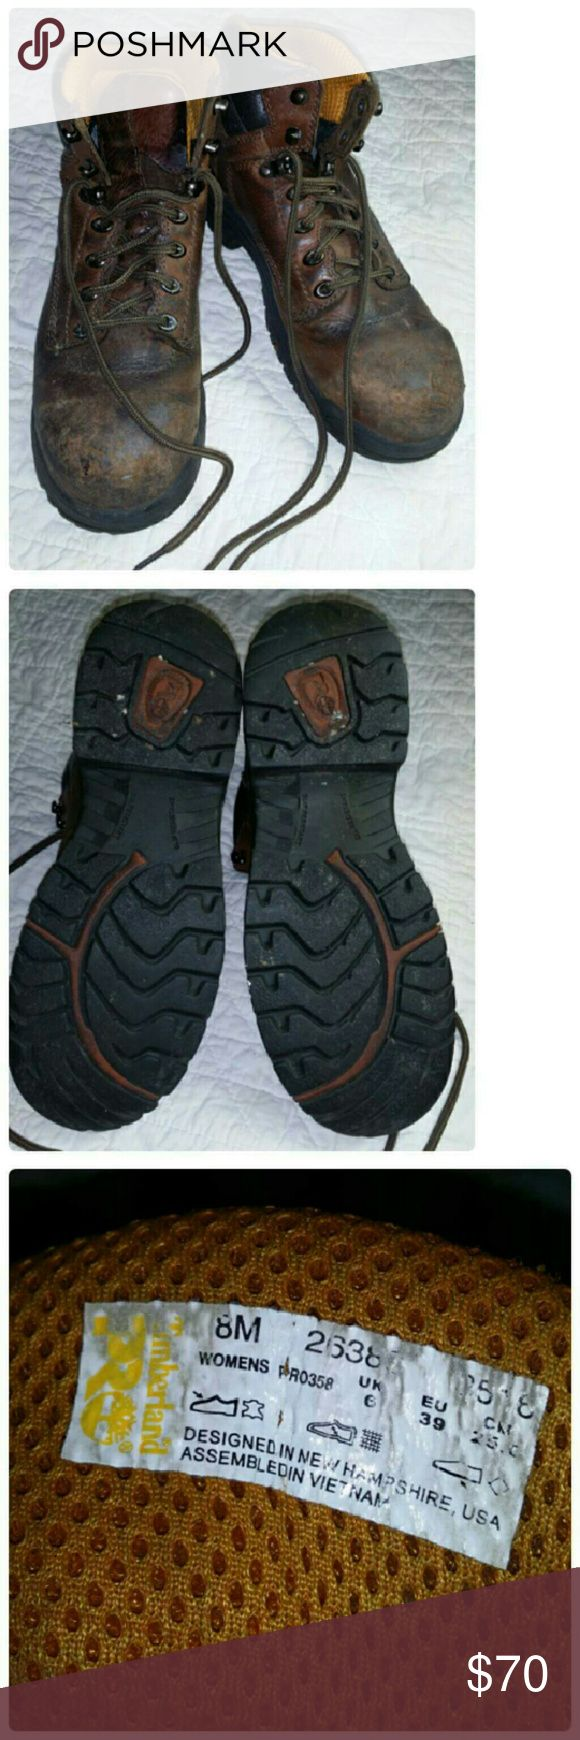 Womans Timberland steel toe boots Used condition. Great for work or hiking boots ect... Shoes